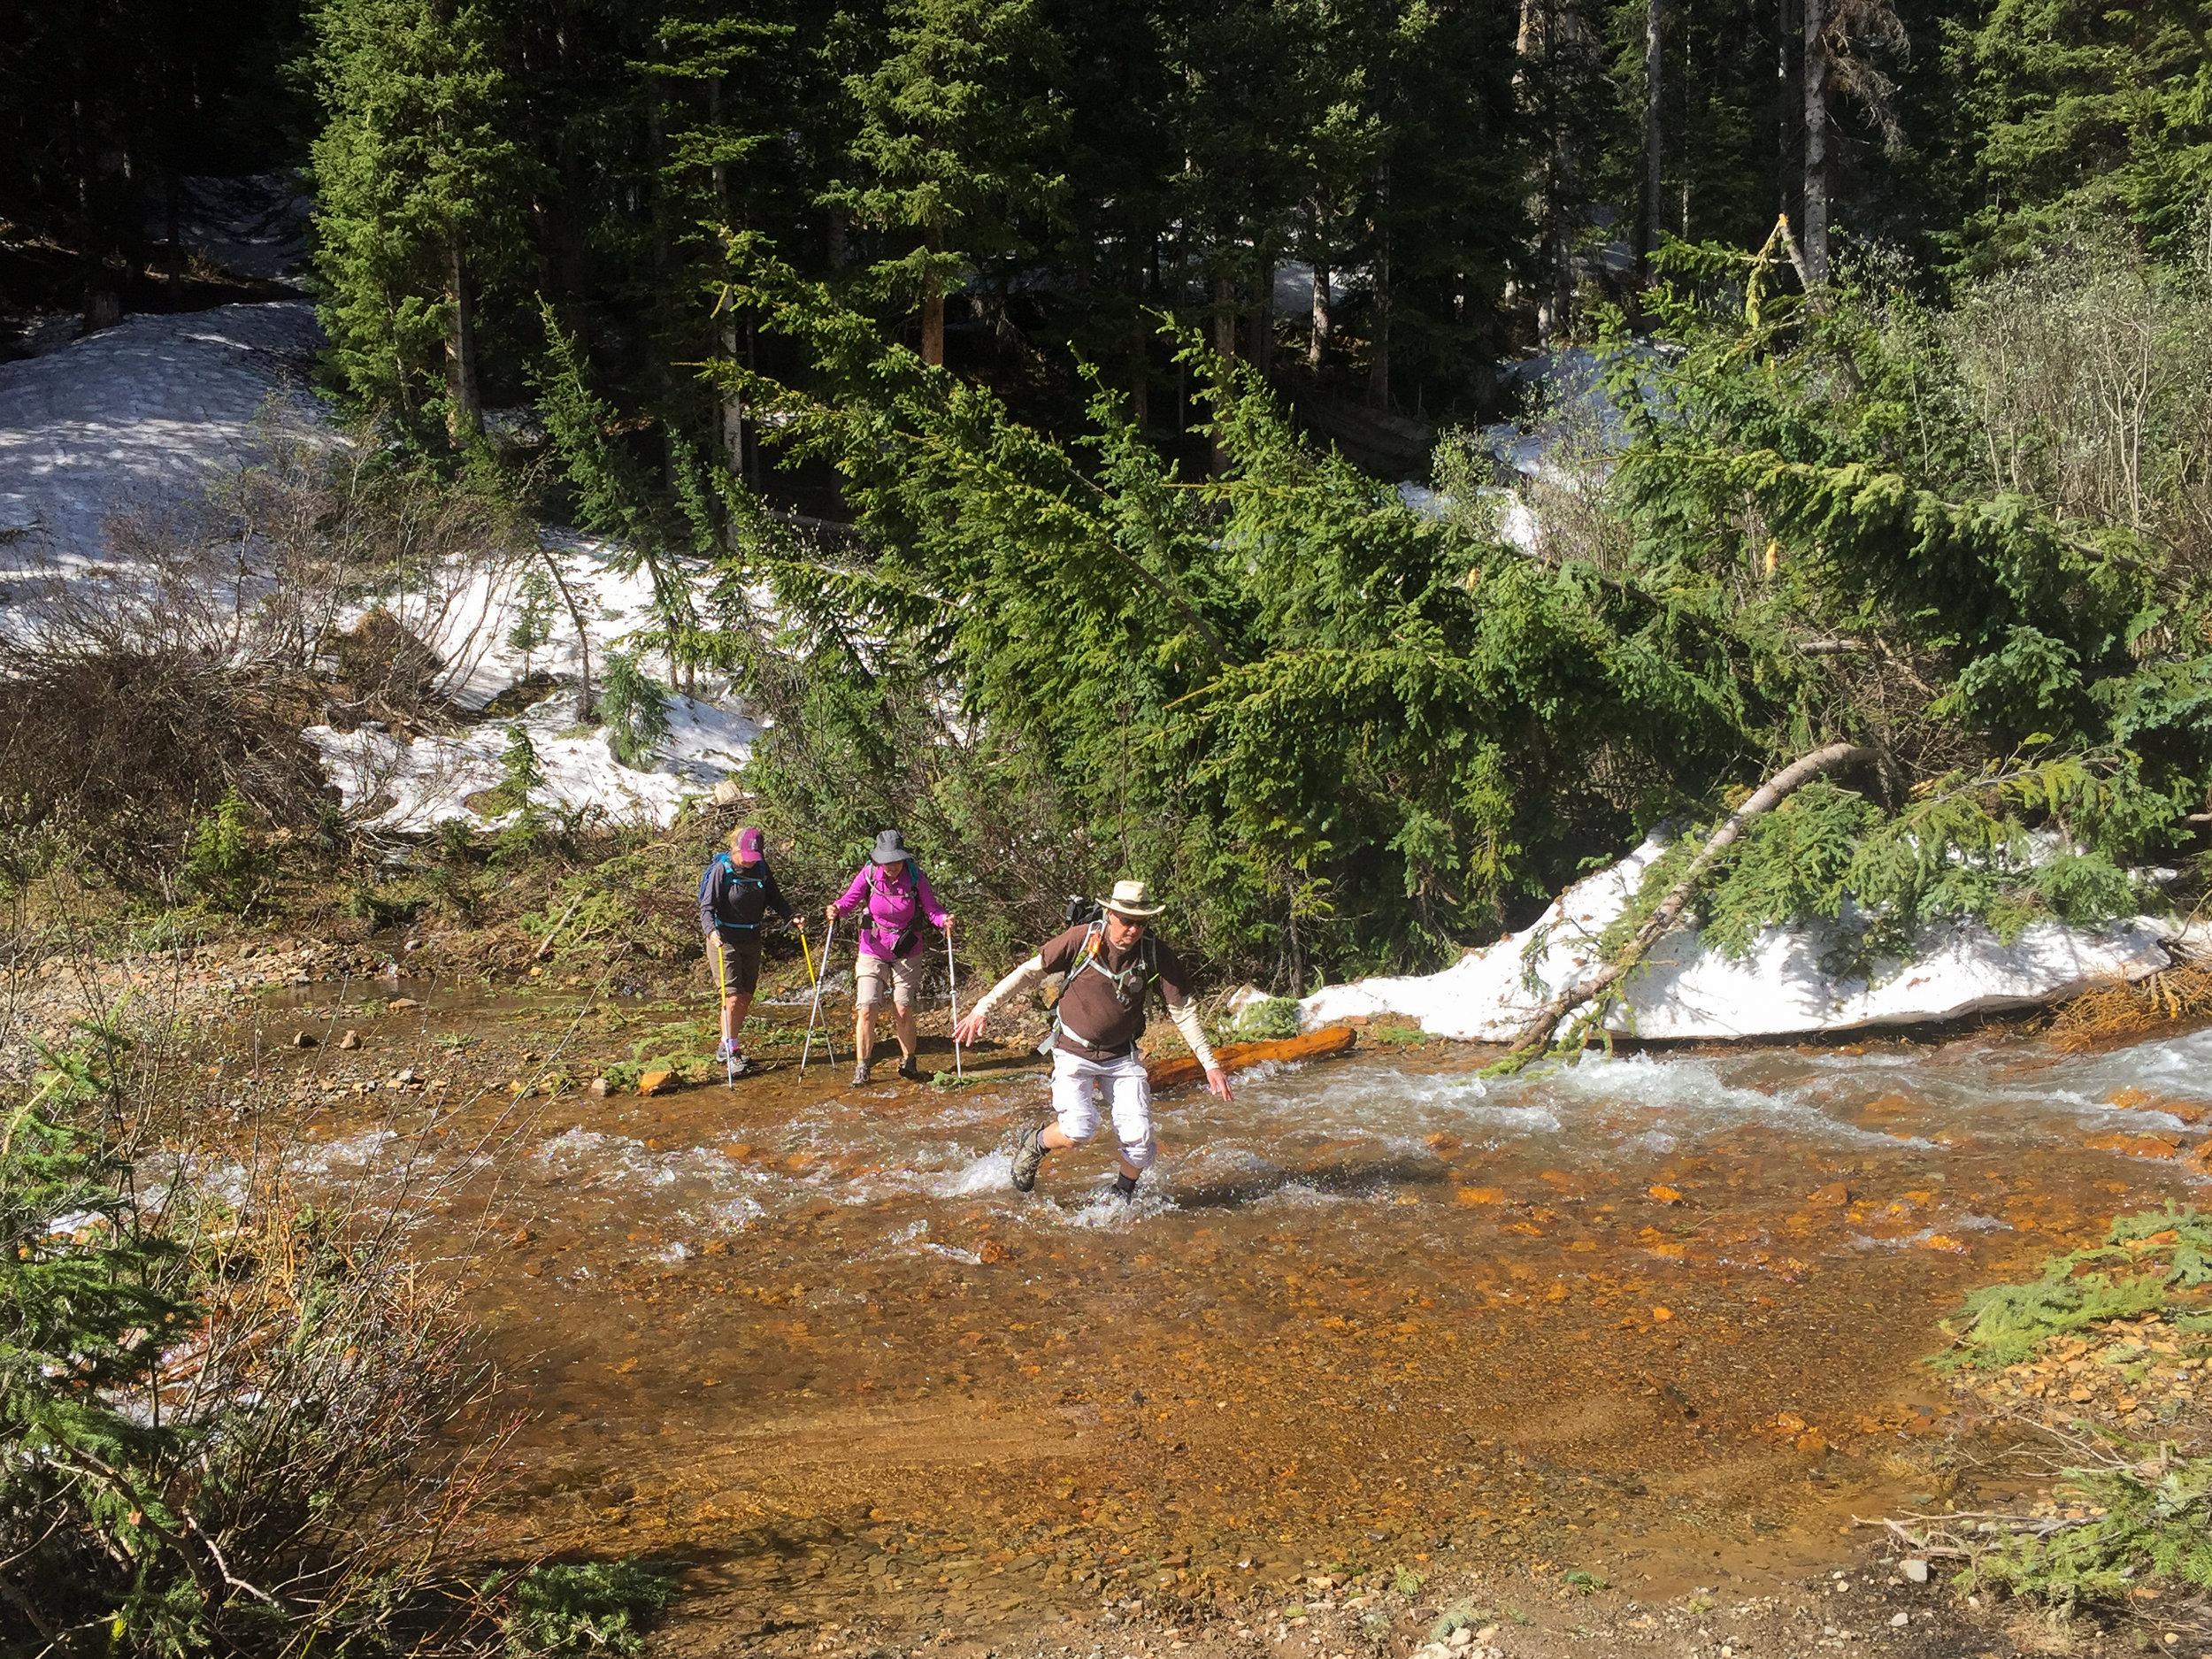 After dilly dallying around for 20 minutes trying to avoid the water, Team Everest finally attempts the first water crossing